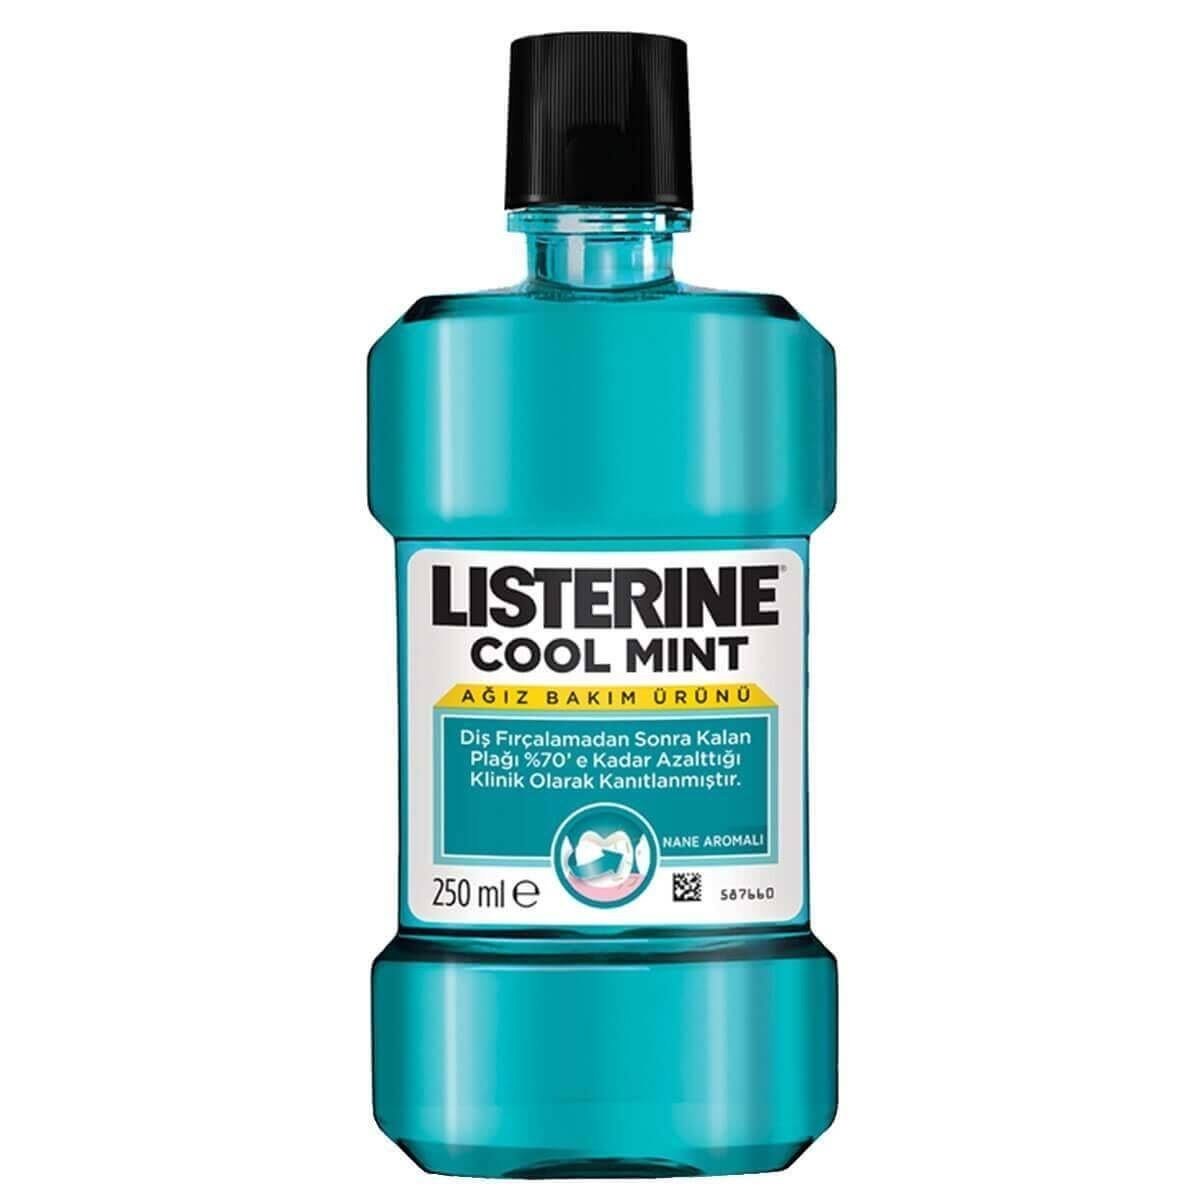 Listerine Mouthwash - Cool Mint, 250ml